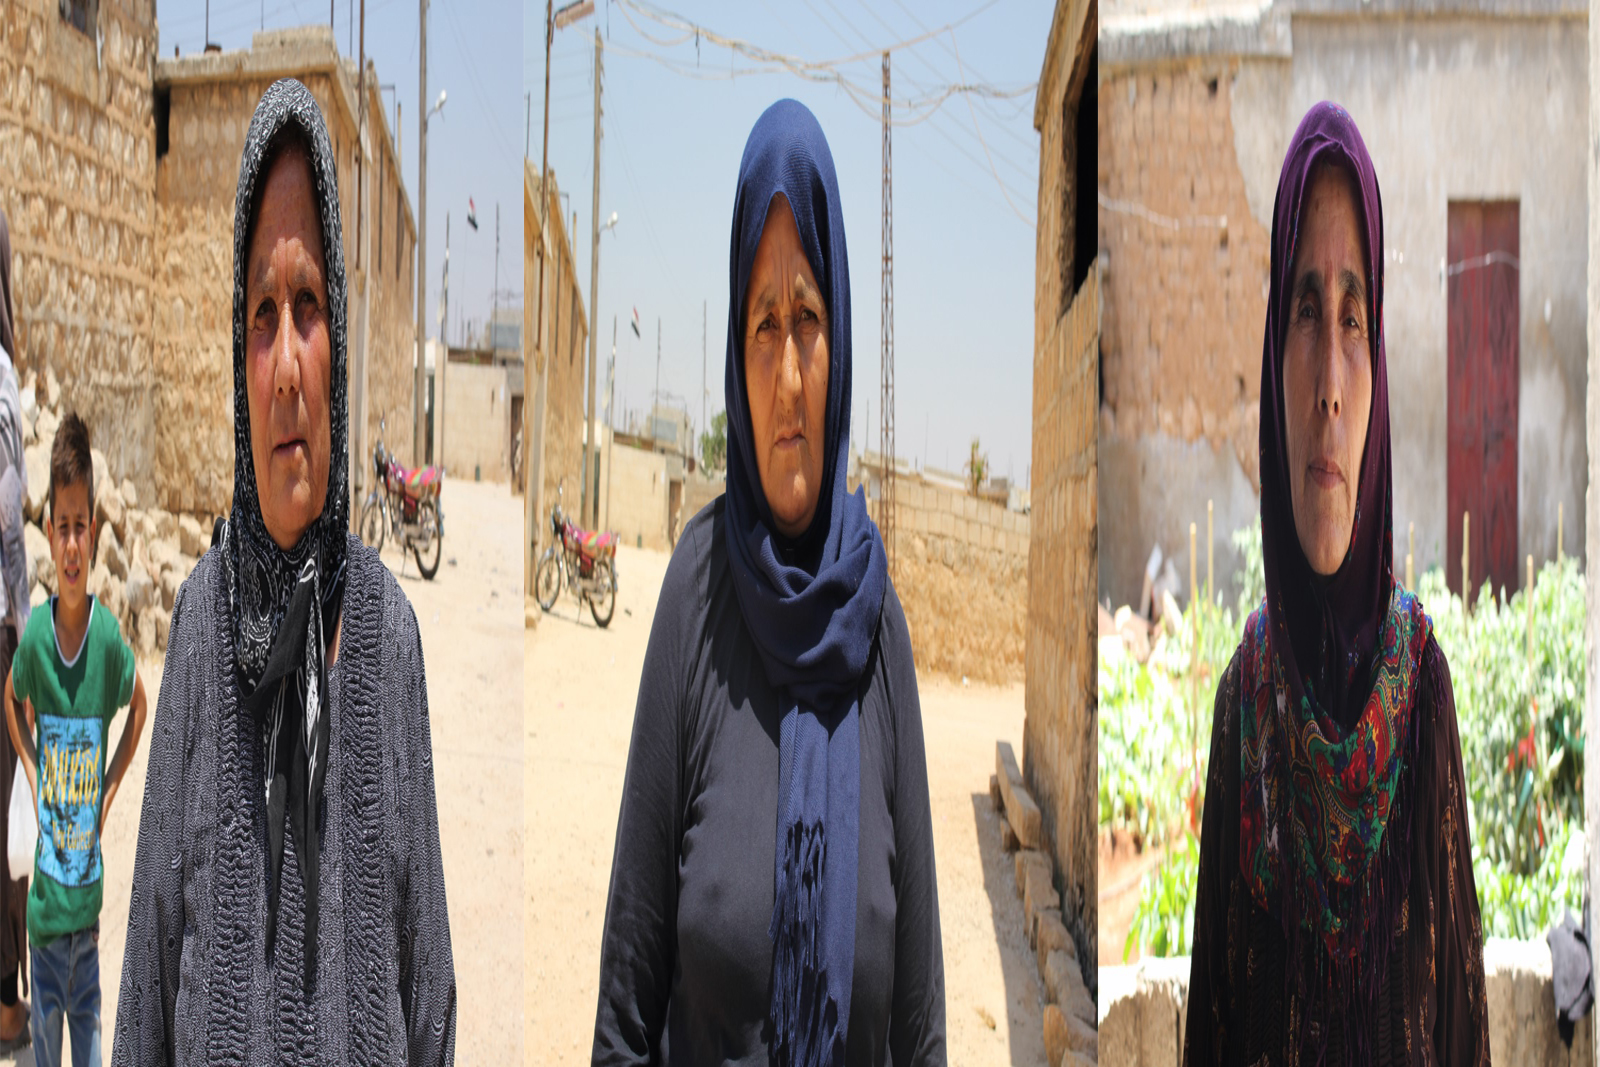 Afrin women: We to escalate struggle as Ocalan demanded